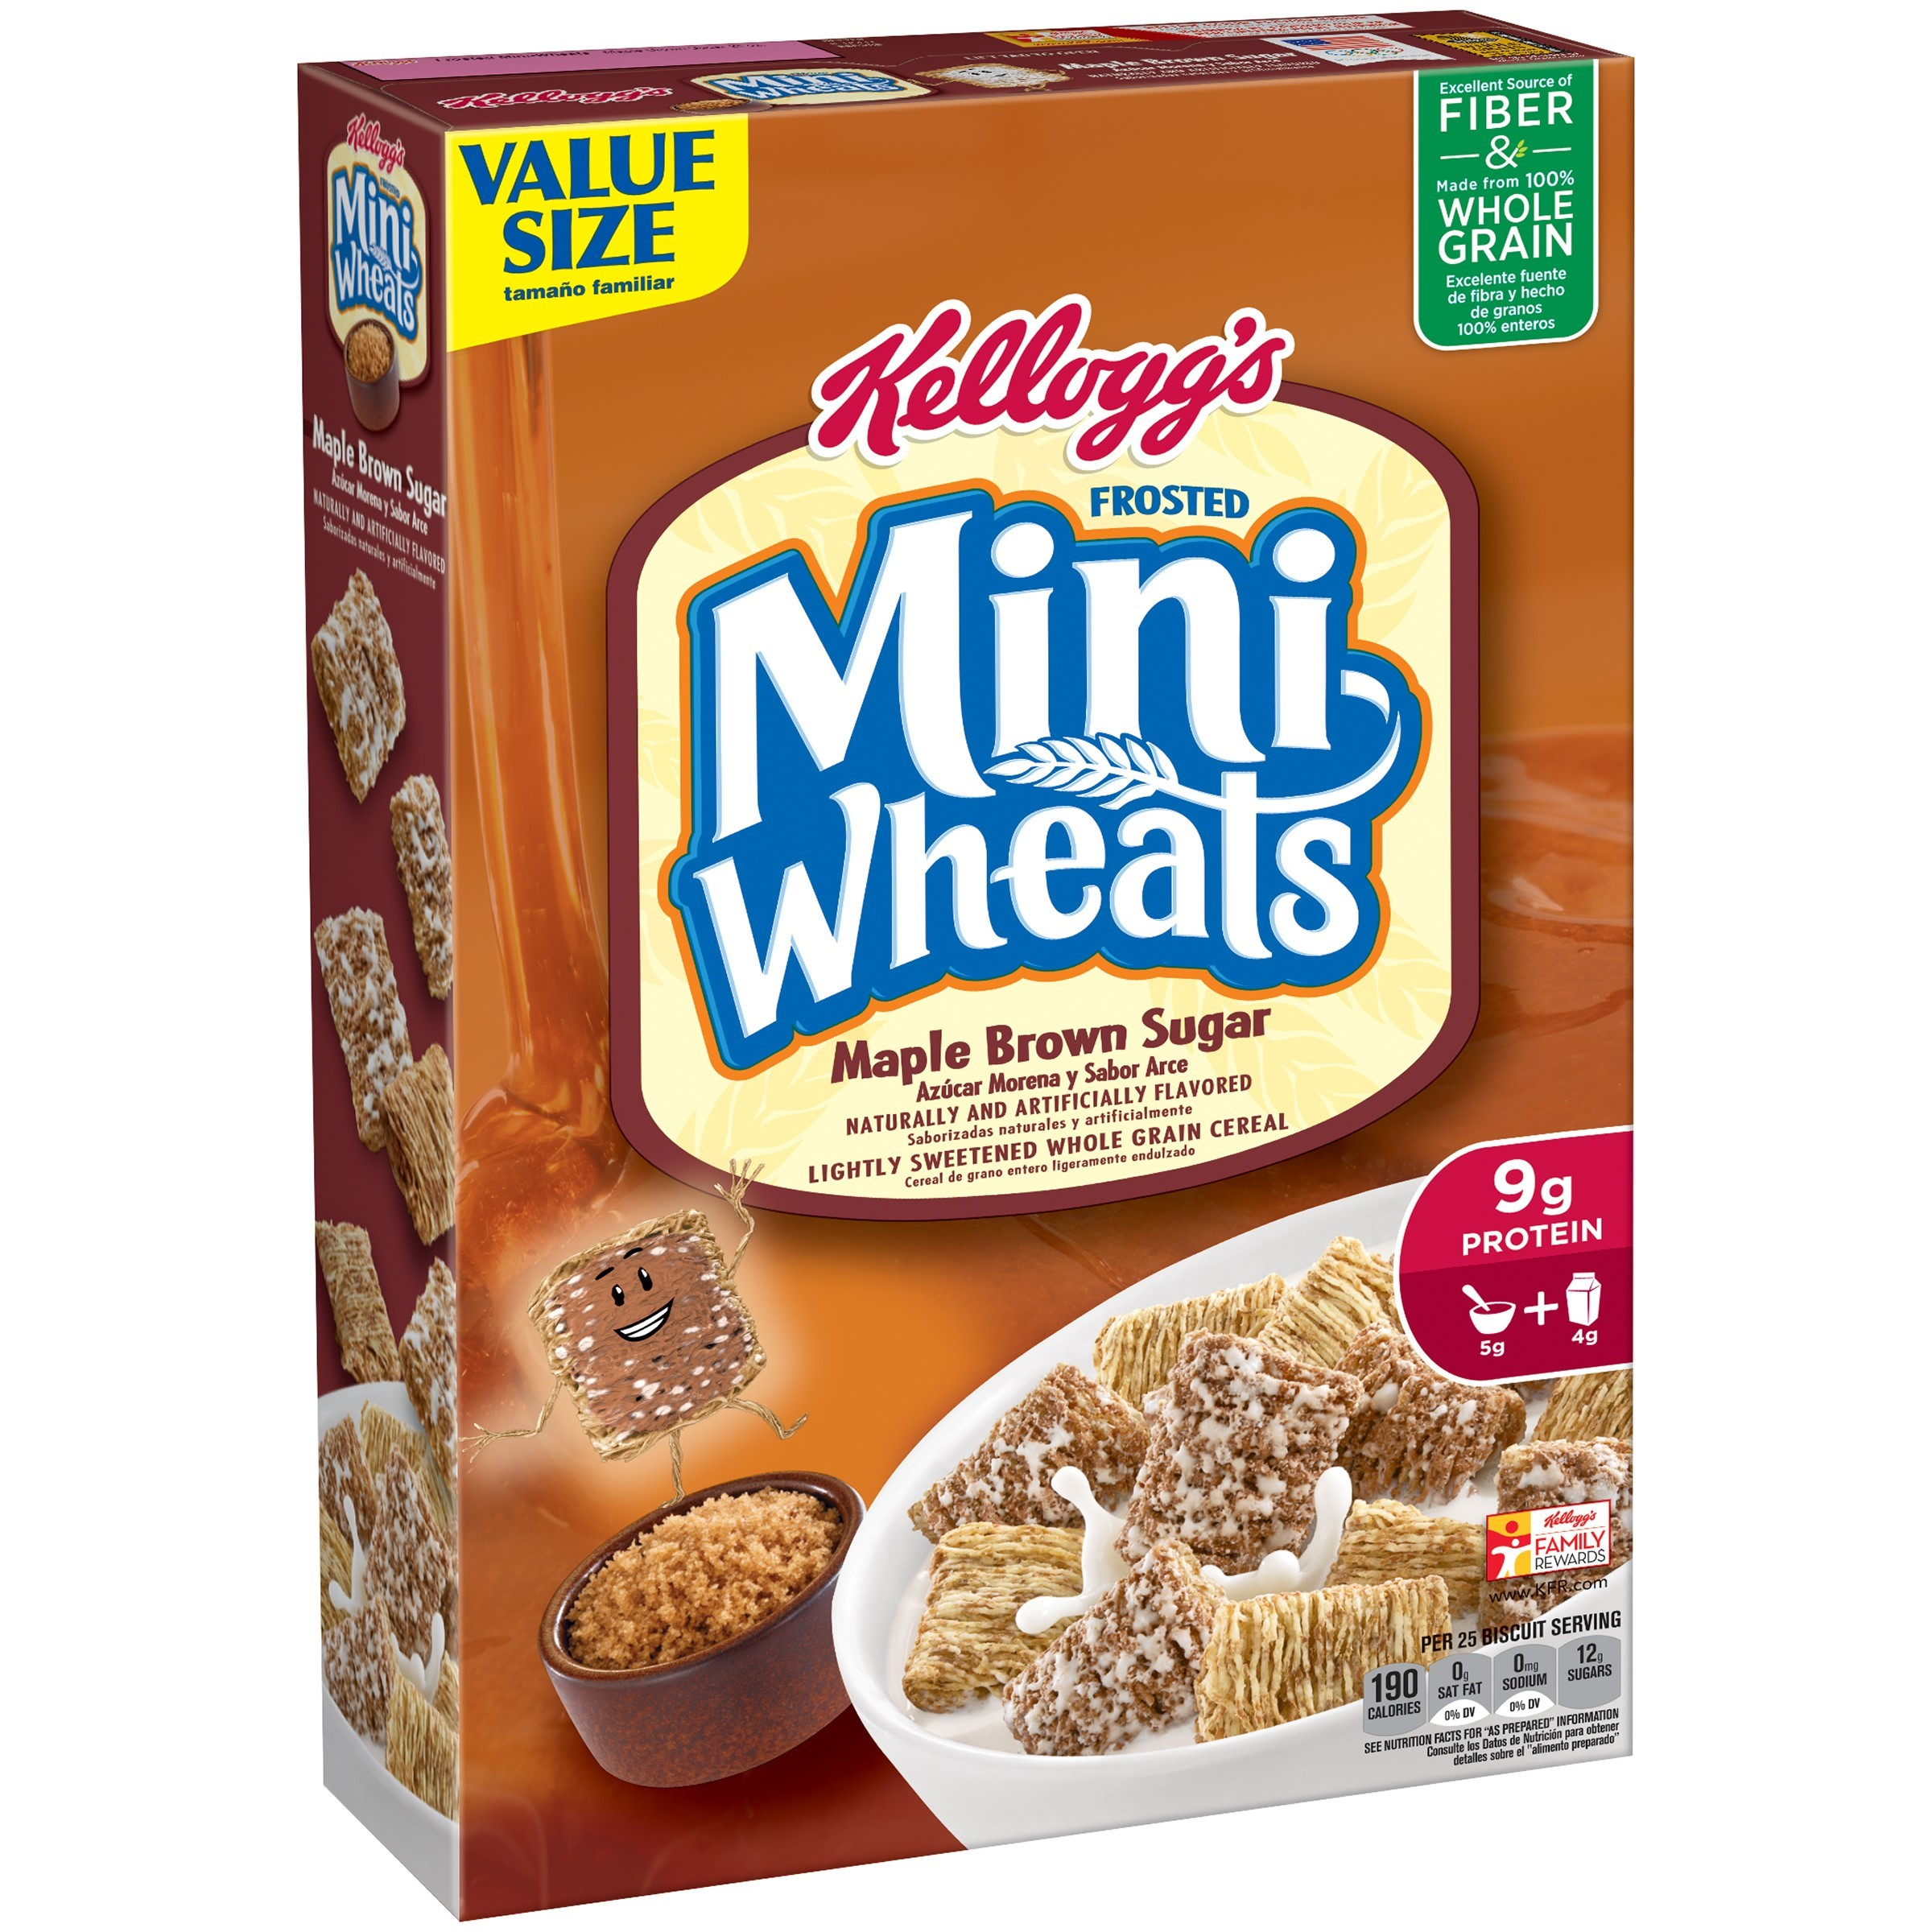 Kellogg's Frosted Mini Wheats Cereal, Maple Brown Sugar, 21 Oz